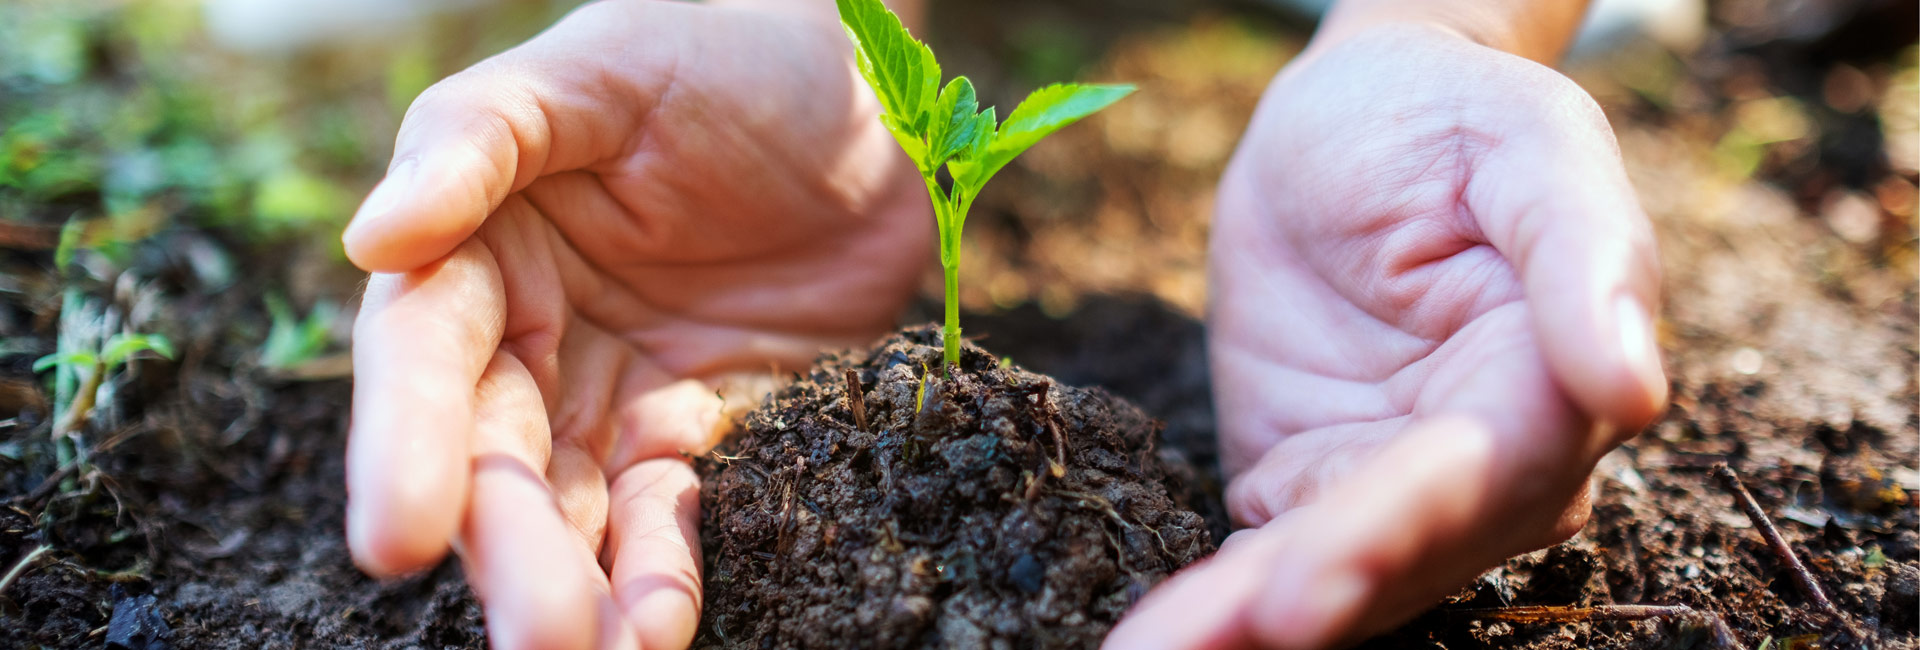 Leadnurturing and lead management - ways to success